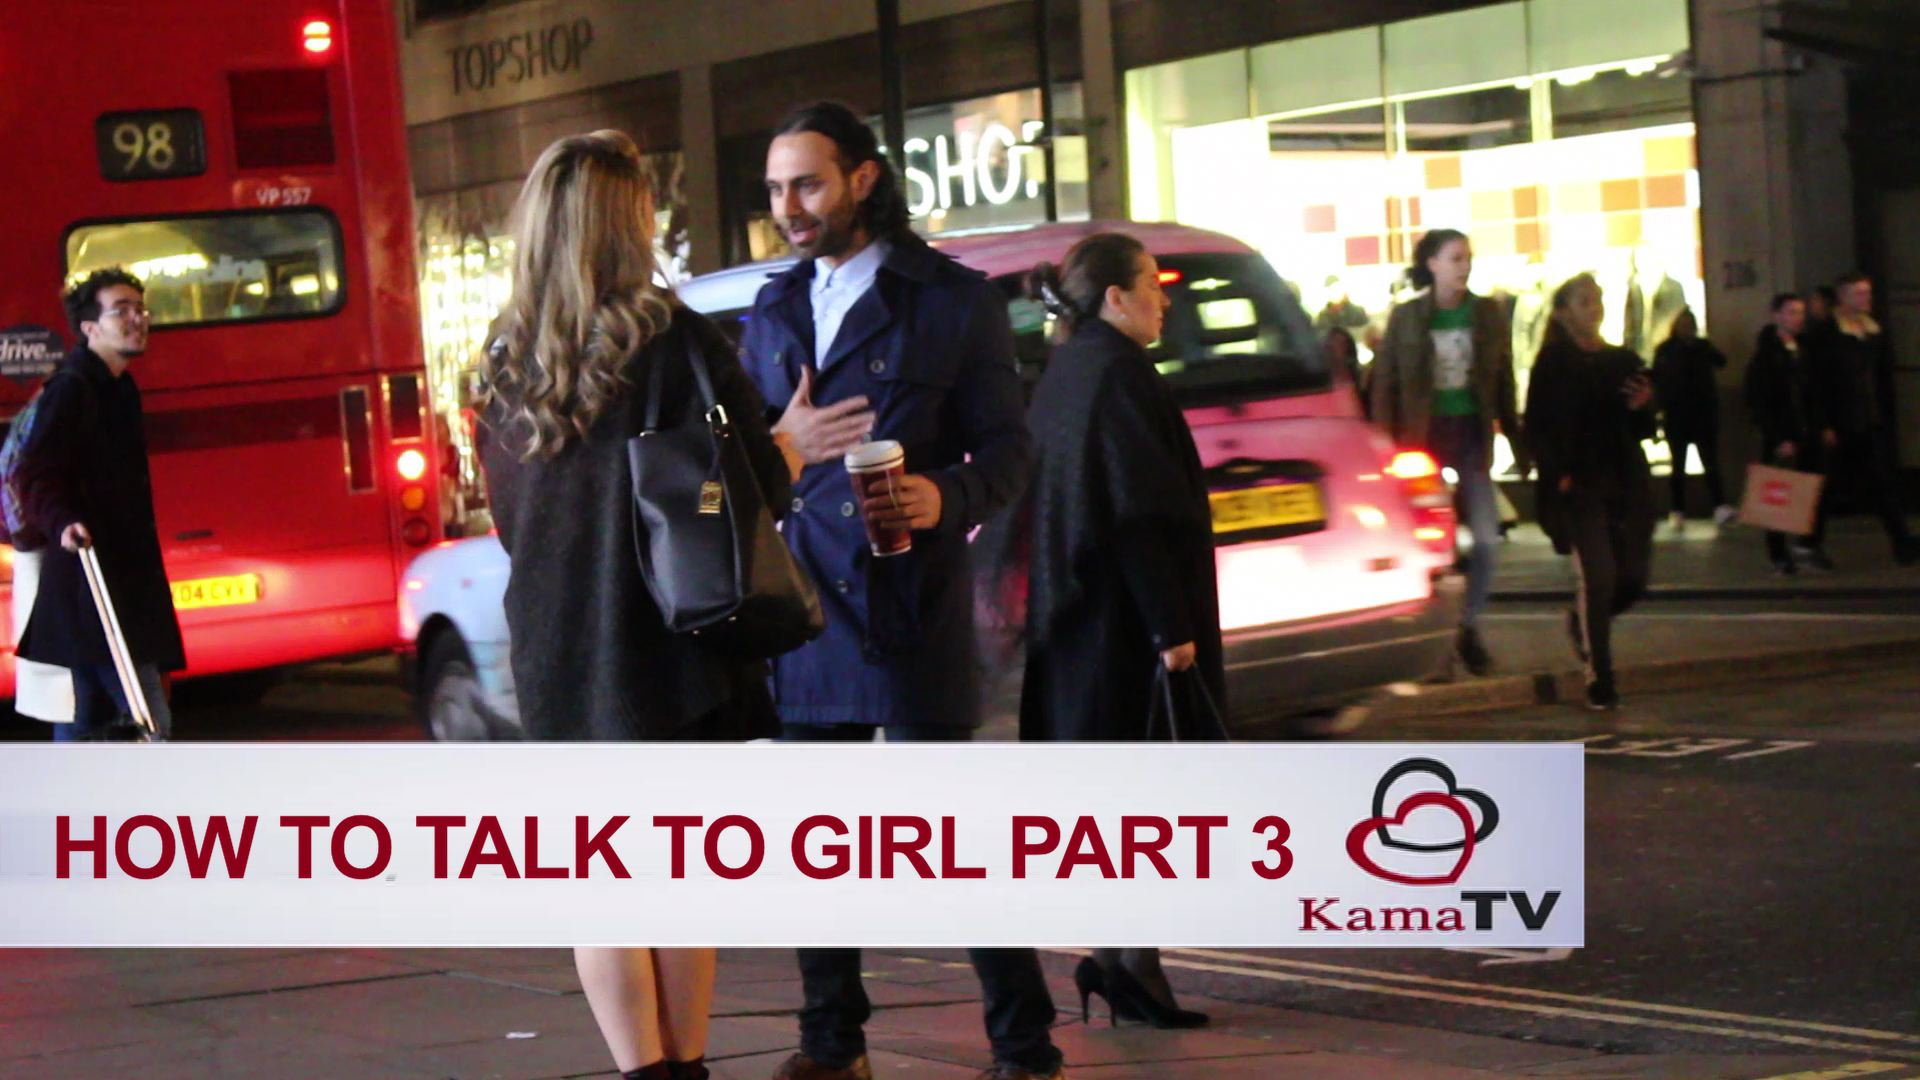 How to talk to women PART 3